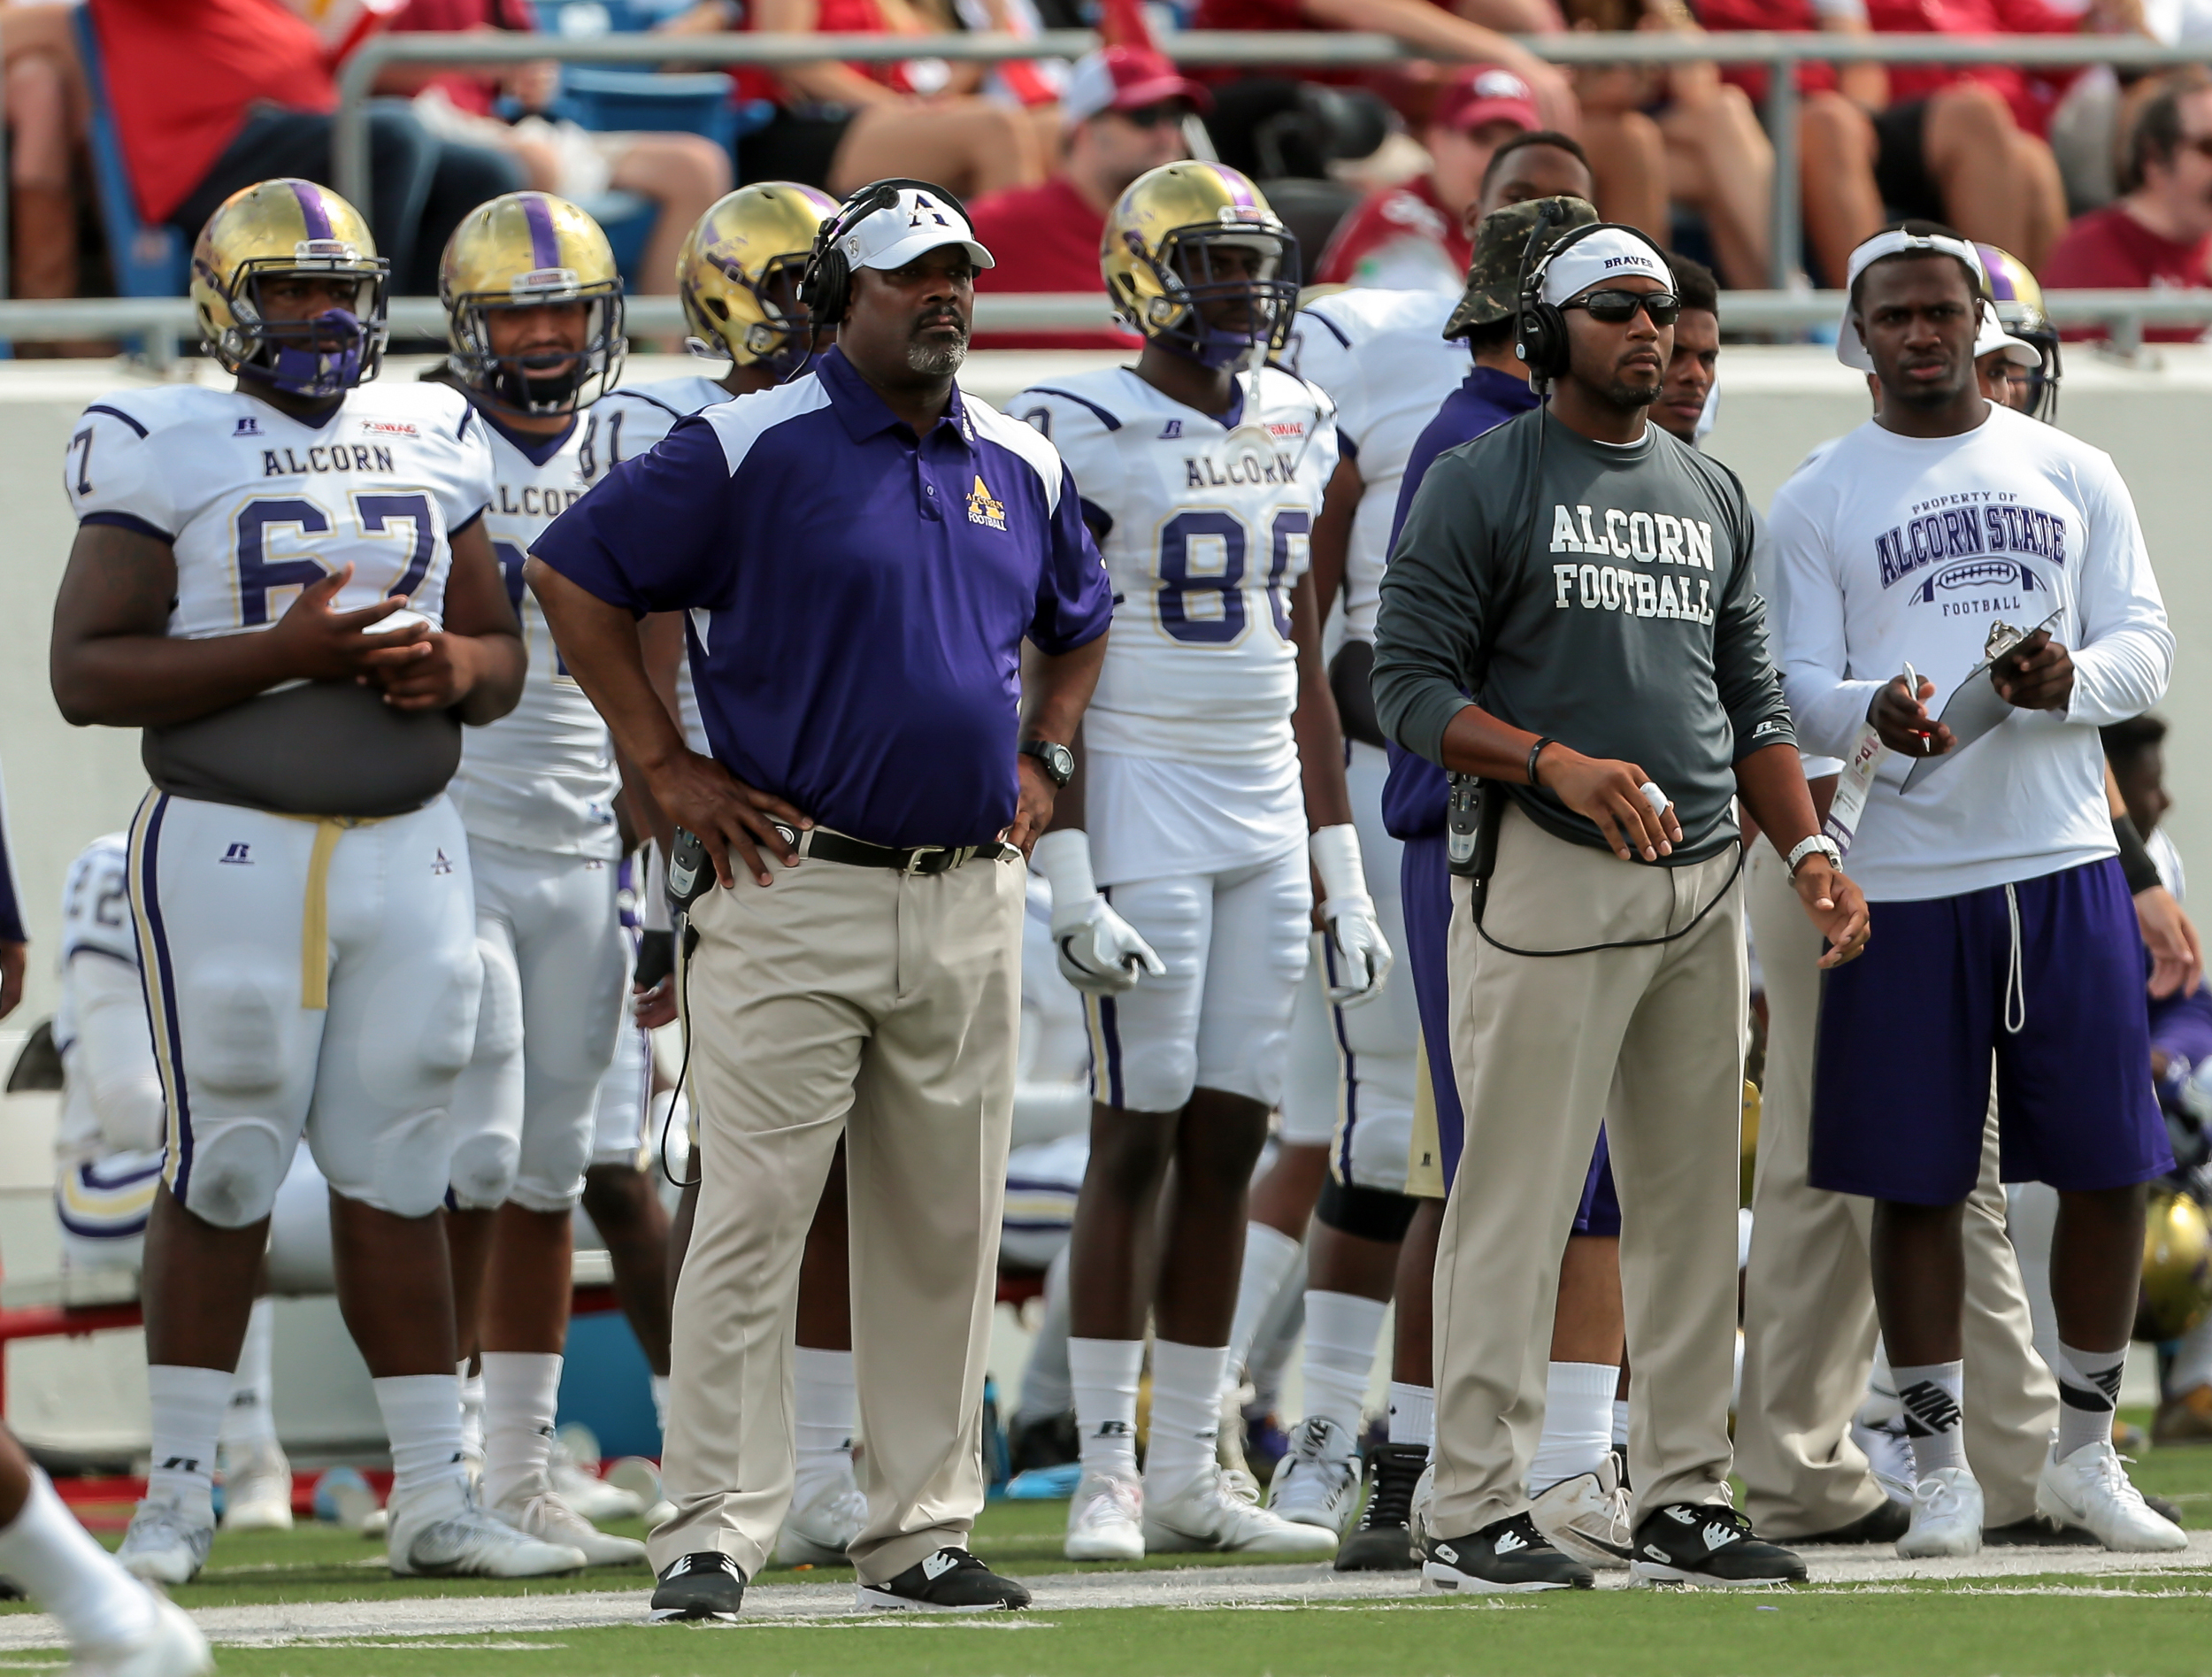 Alcorn State's head coach Fred McNair, front left, surveys the field during the second half of an NCAA football game against Arkansas on Saturday, Oct. 1, 2016, in Little Rock, Ark. Arkansas beat Alcorn State, 52-10.